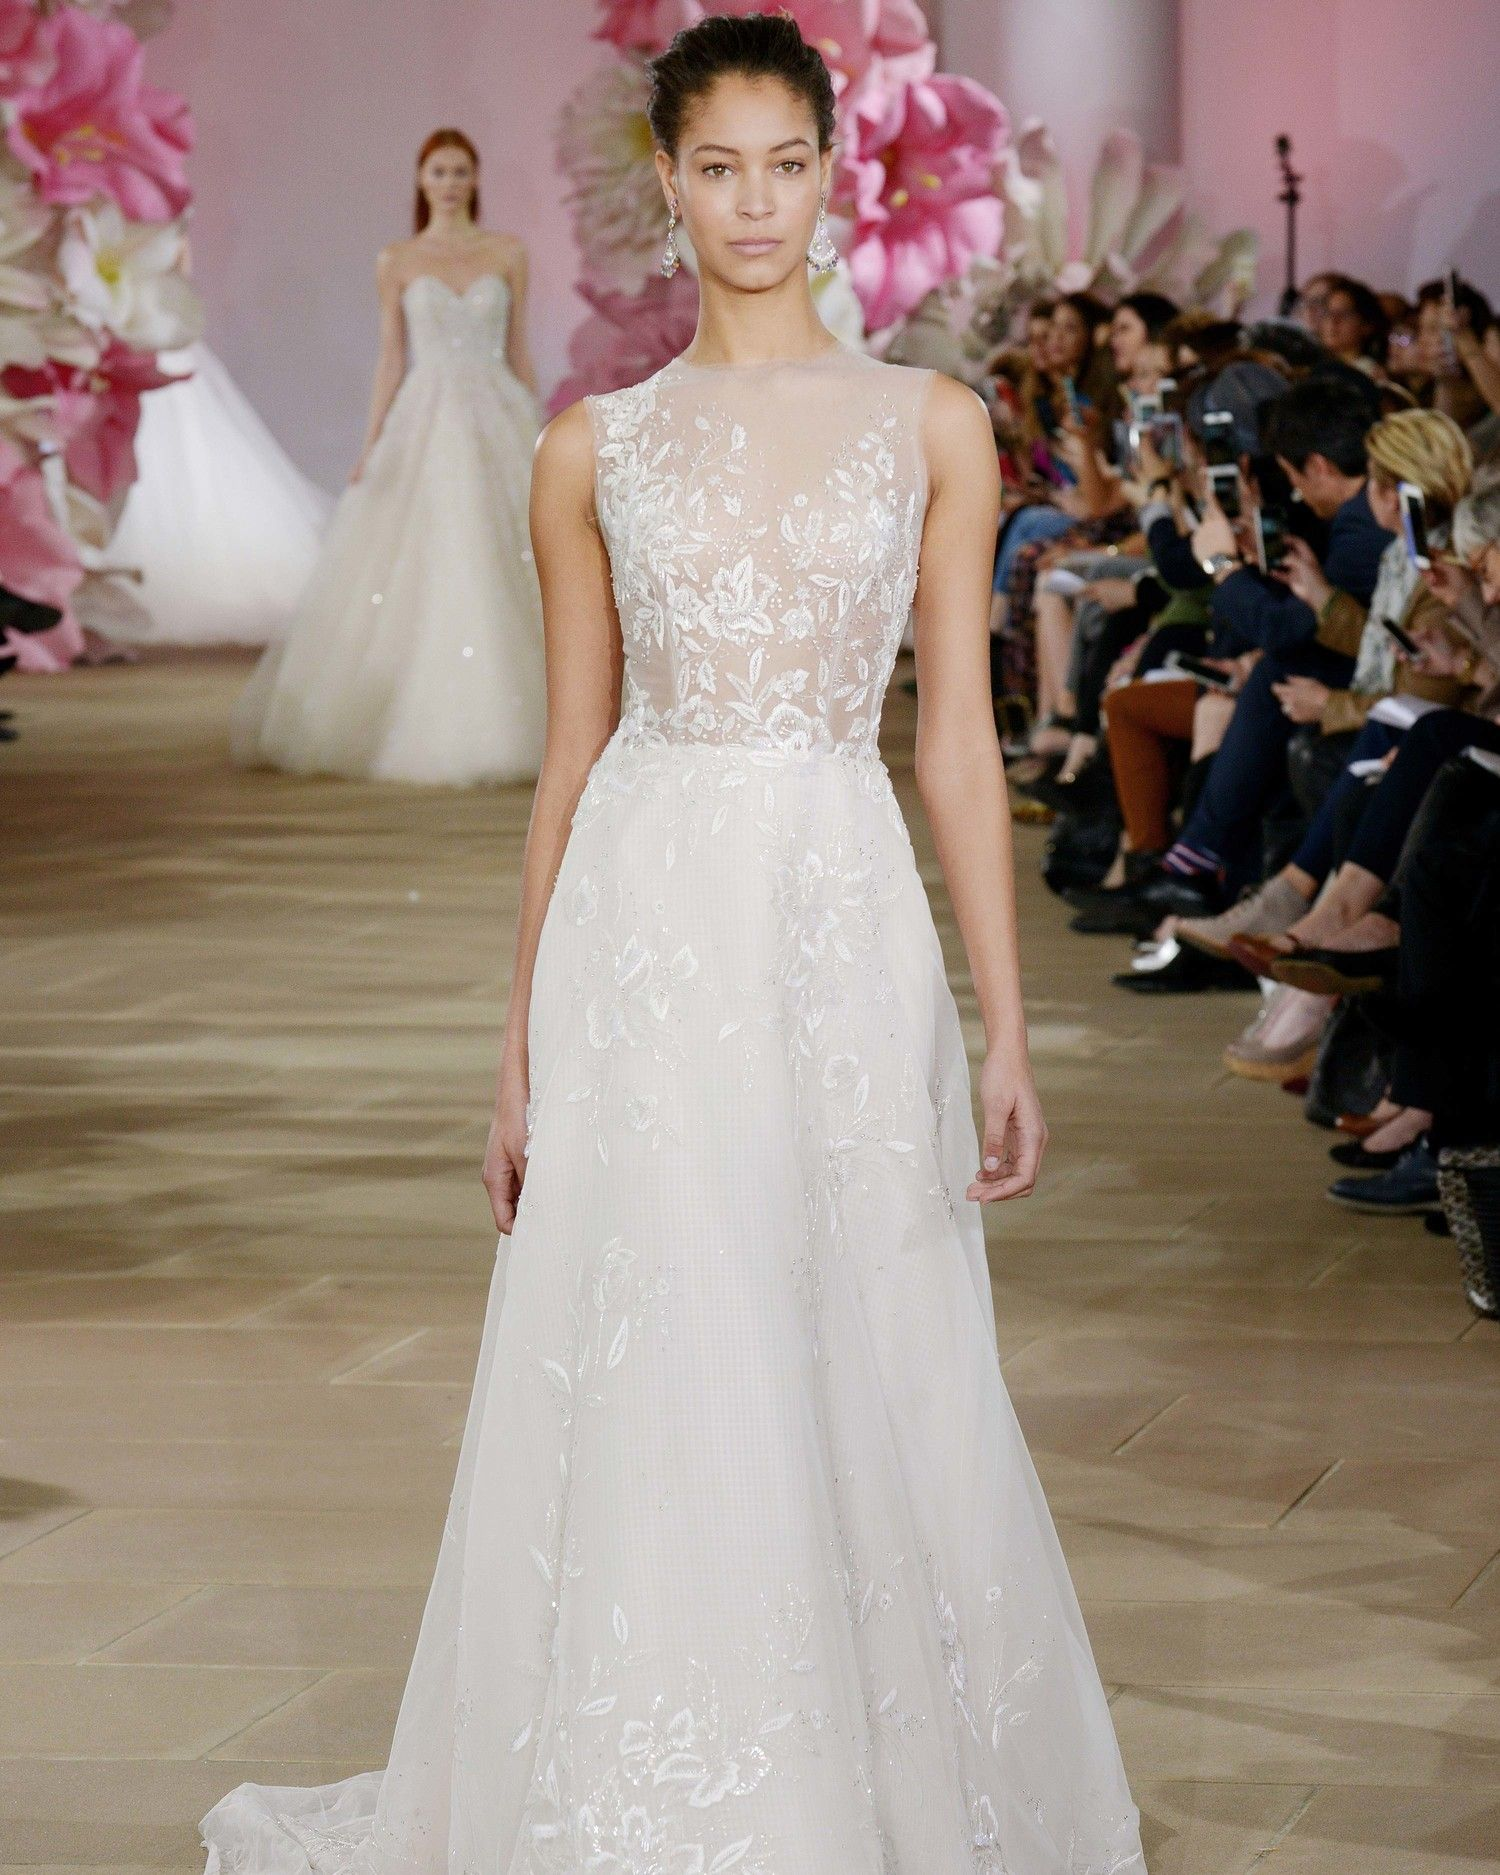 Simple Wedding Dresses That Are Just Plain Chic  Wedding dress